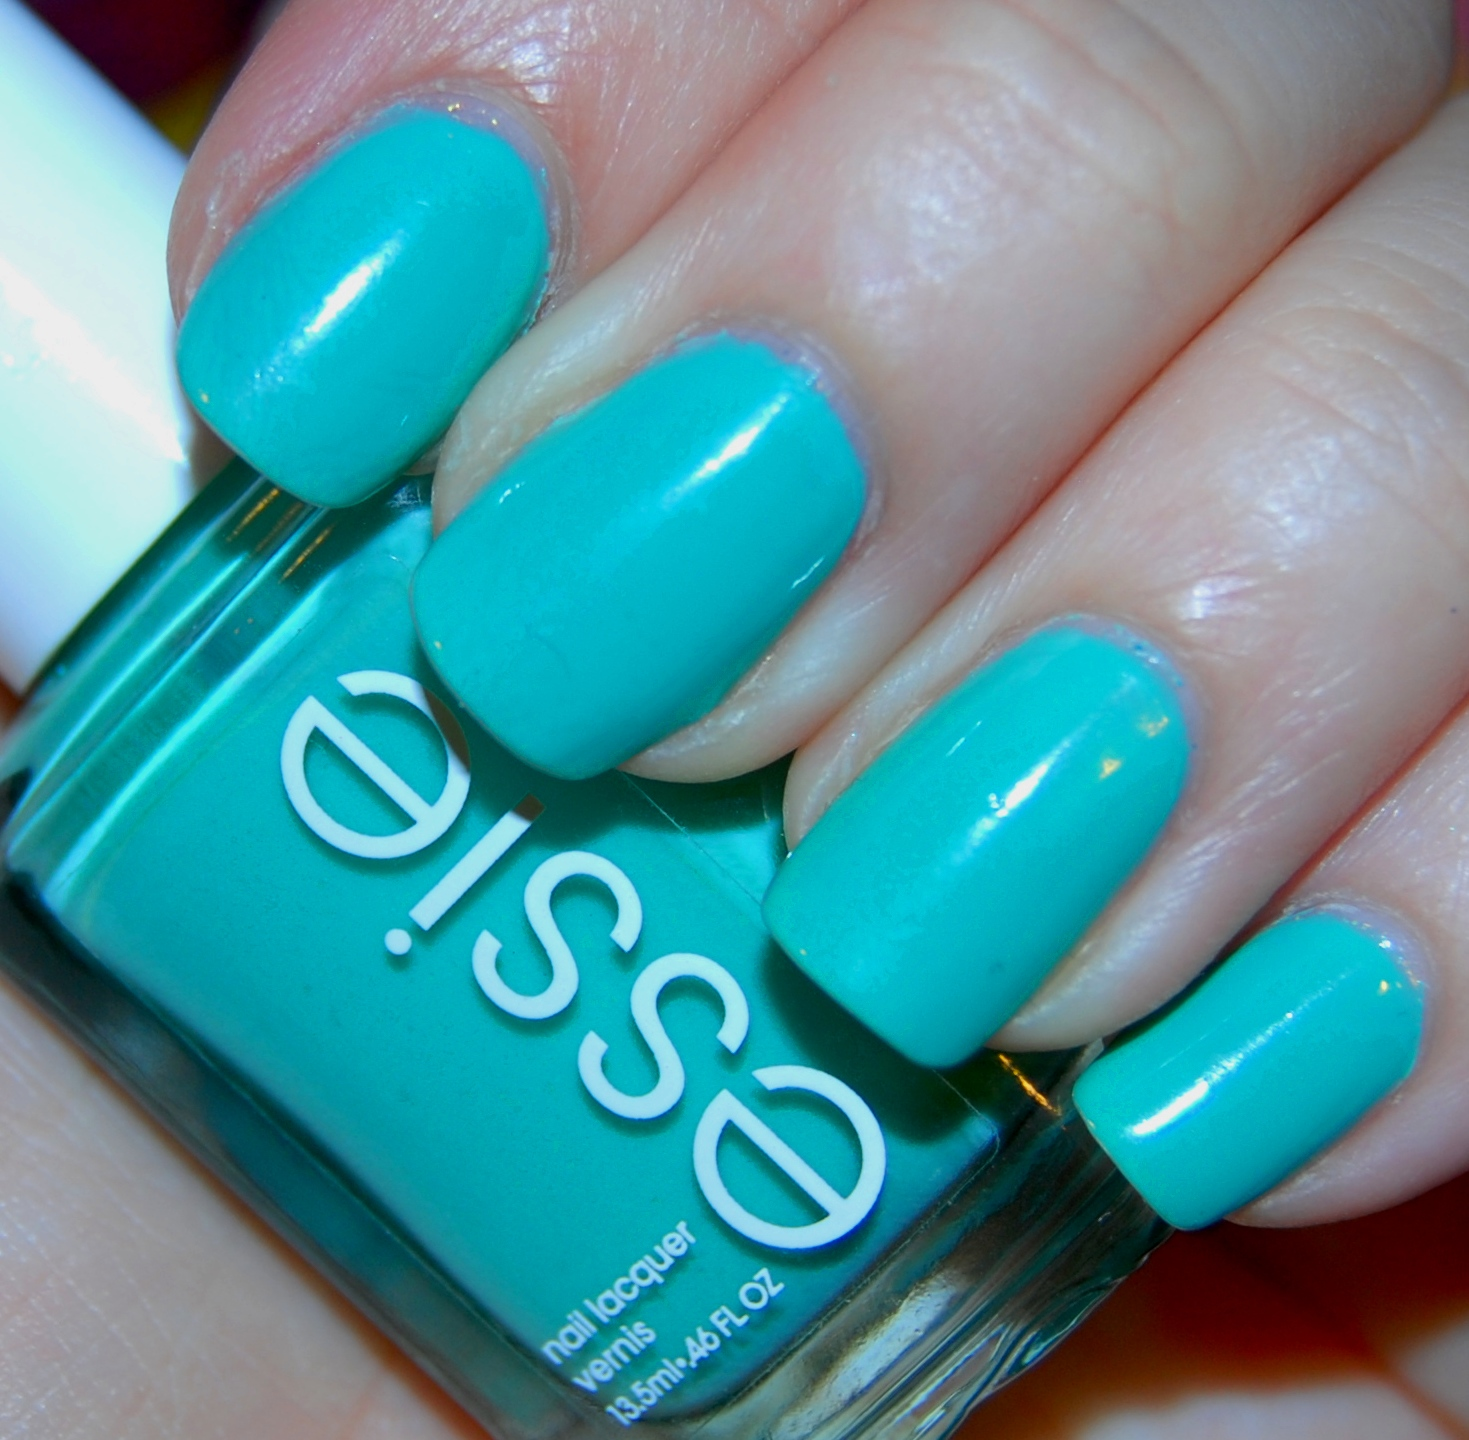 Nail Polish Colors Essie: Mermaid Nails: Essie Turquoise & Caicos Nail Polish